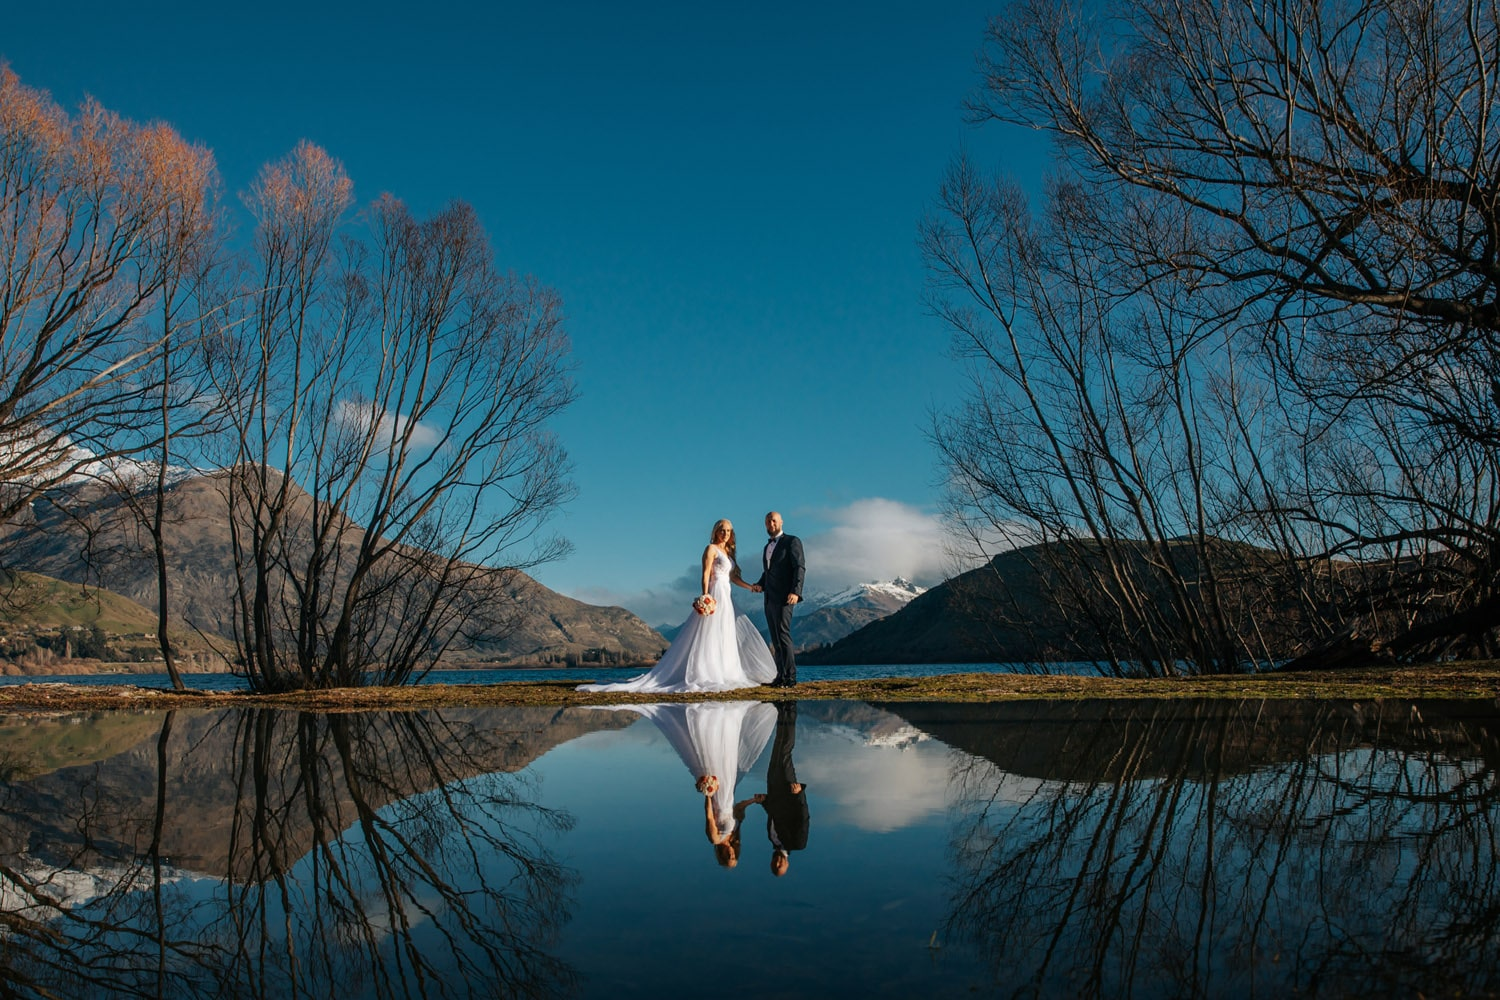 Spring Wedding by the lake in Queenstown